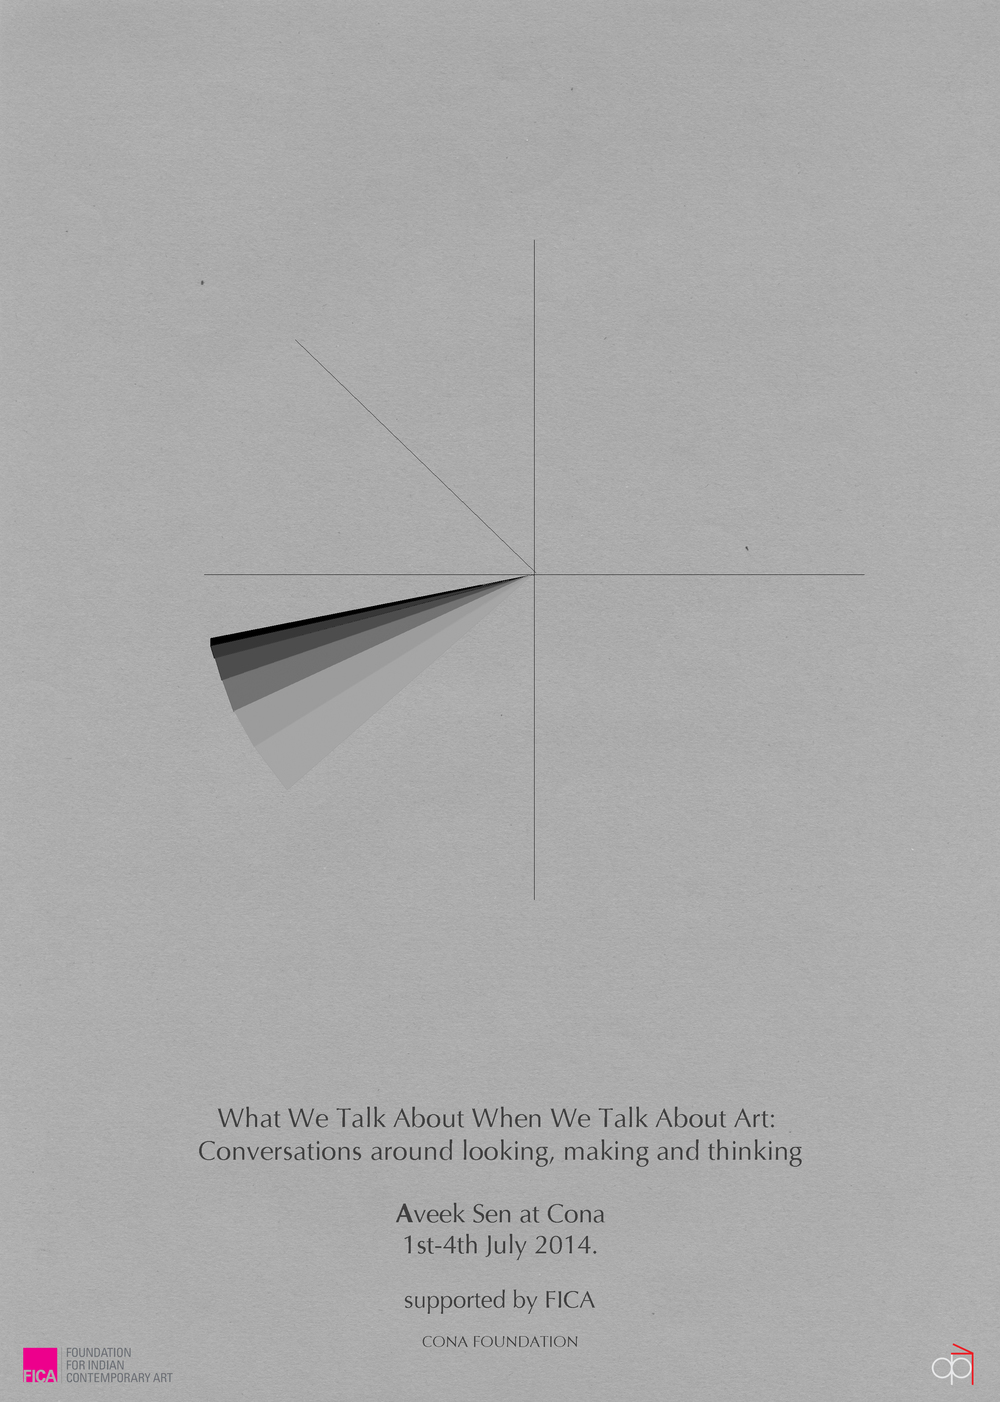 What We Talk About When We Talk About Art: Conversations around looking, making and thinking